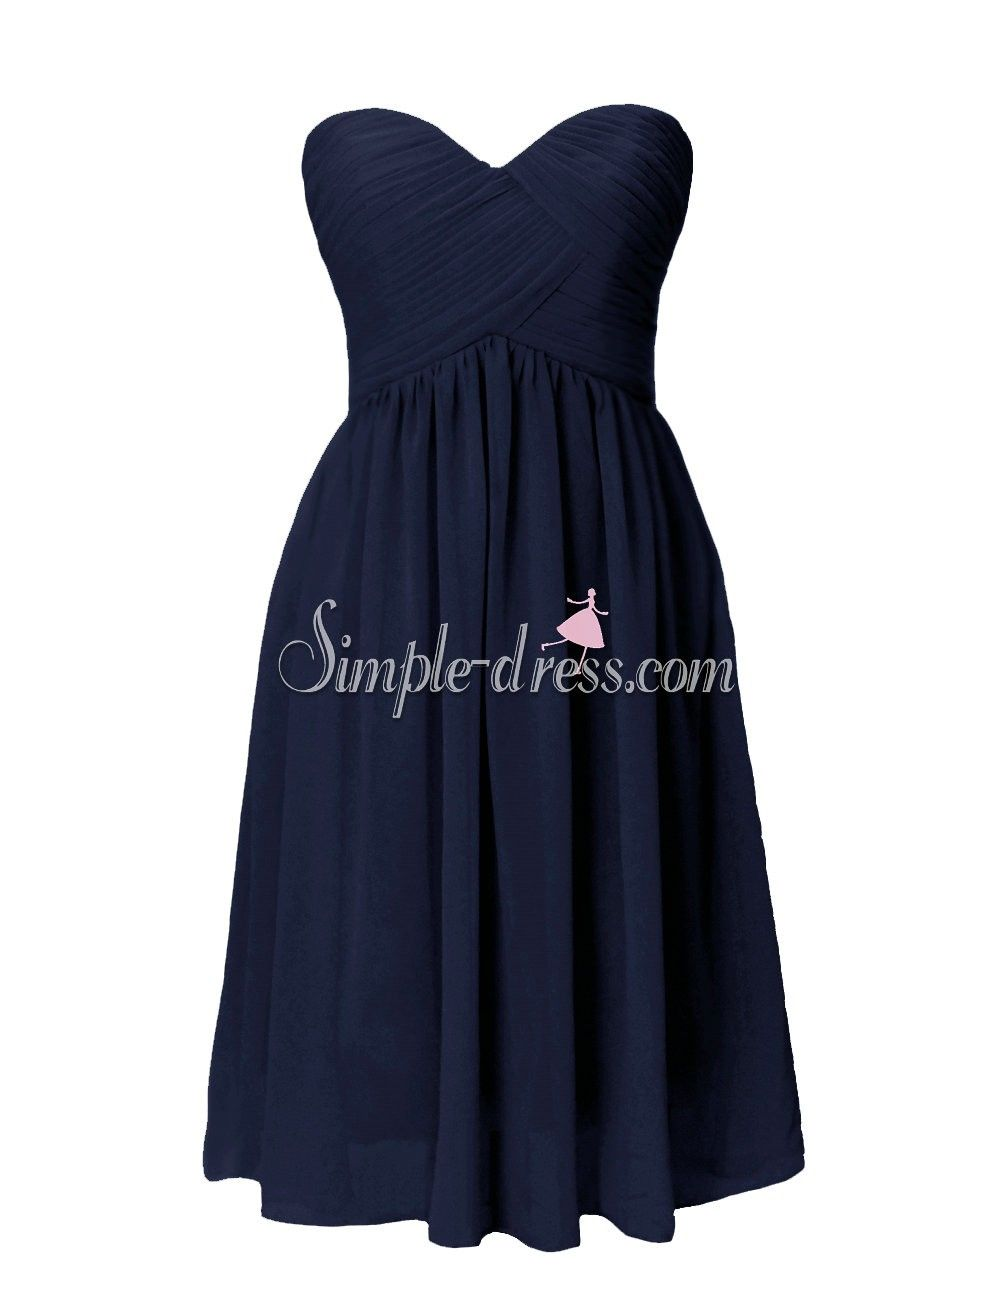 Cheap bridesmaid dresses under navy bridesmaid dresses short